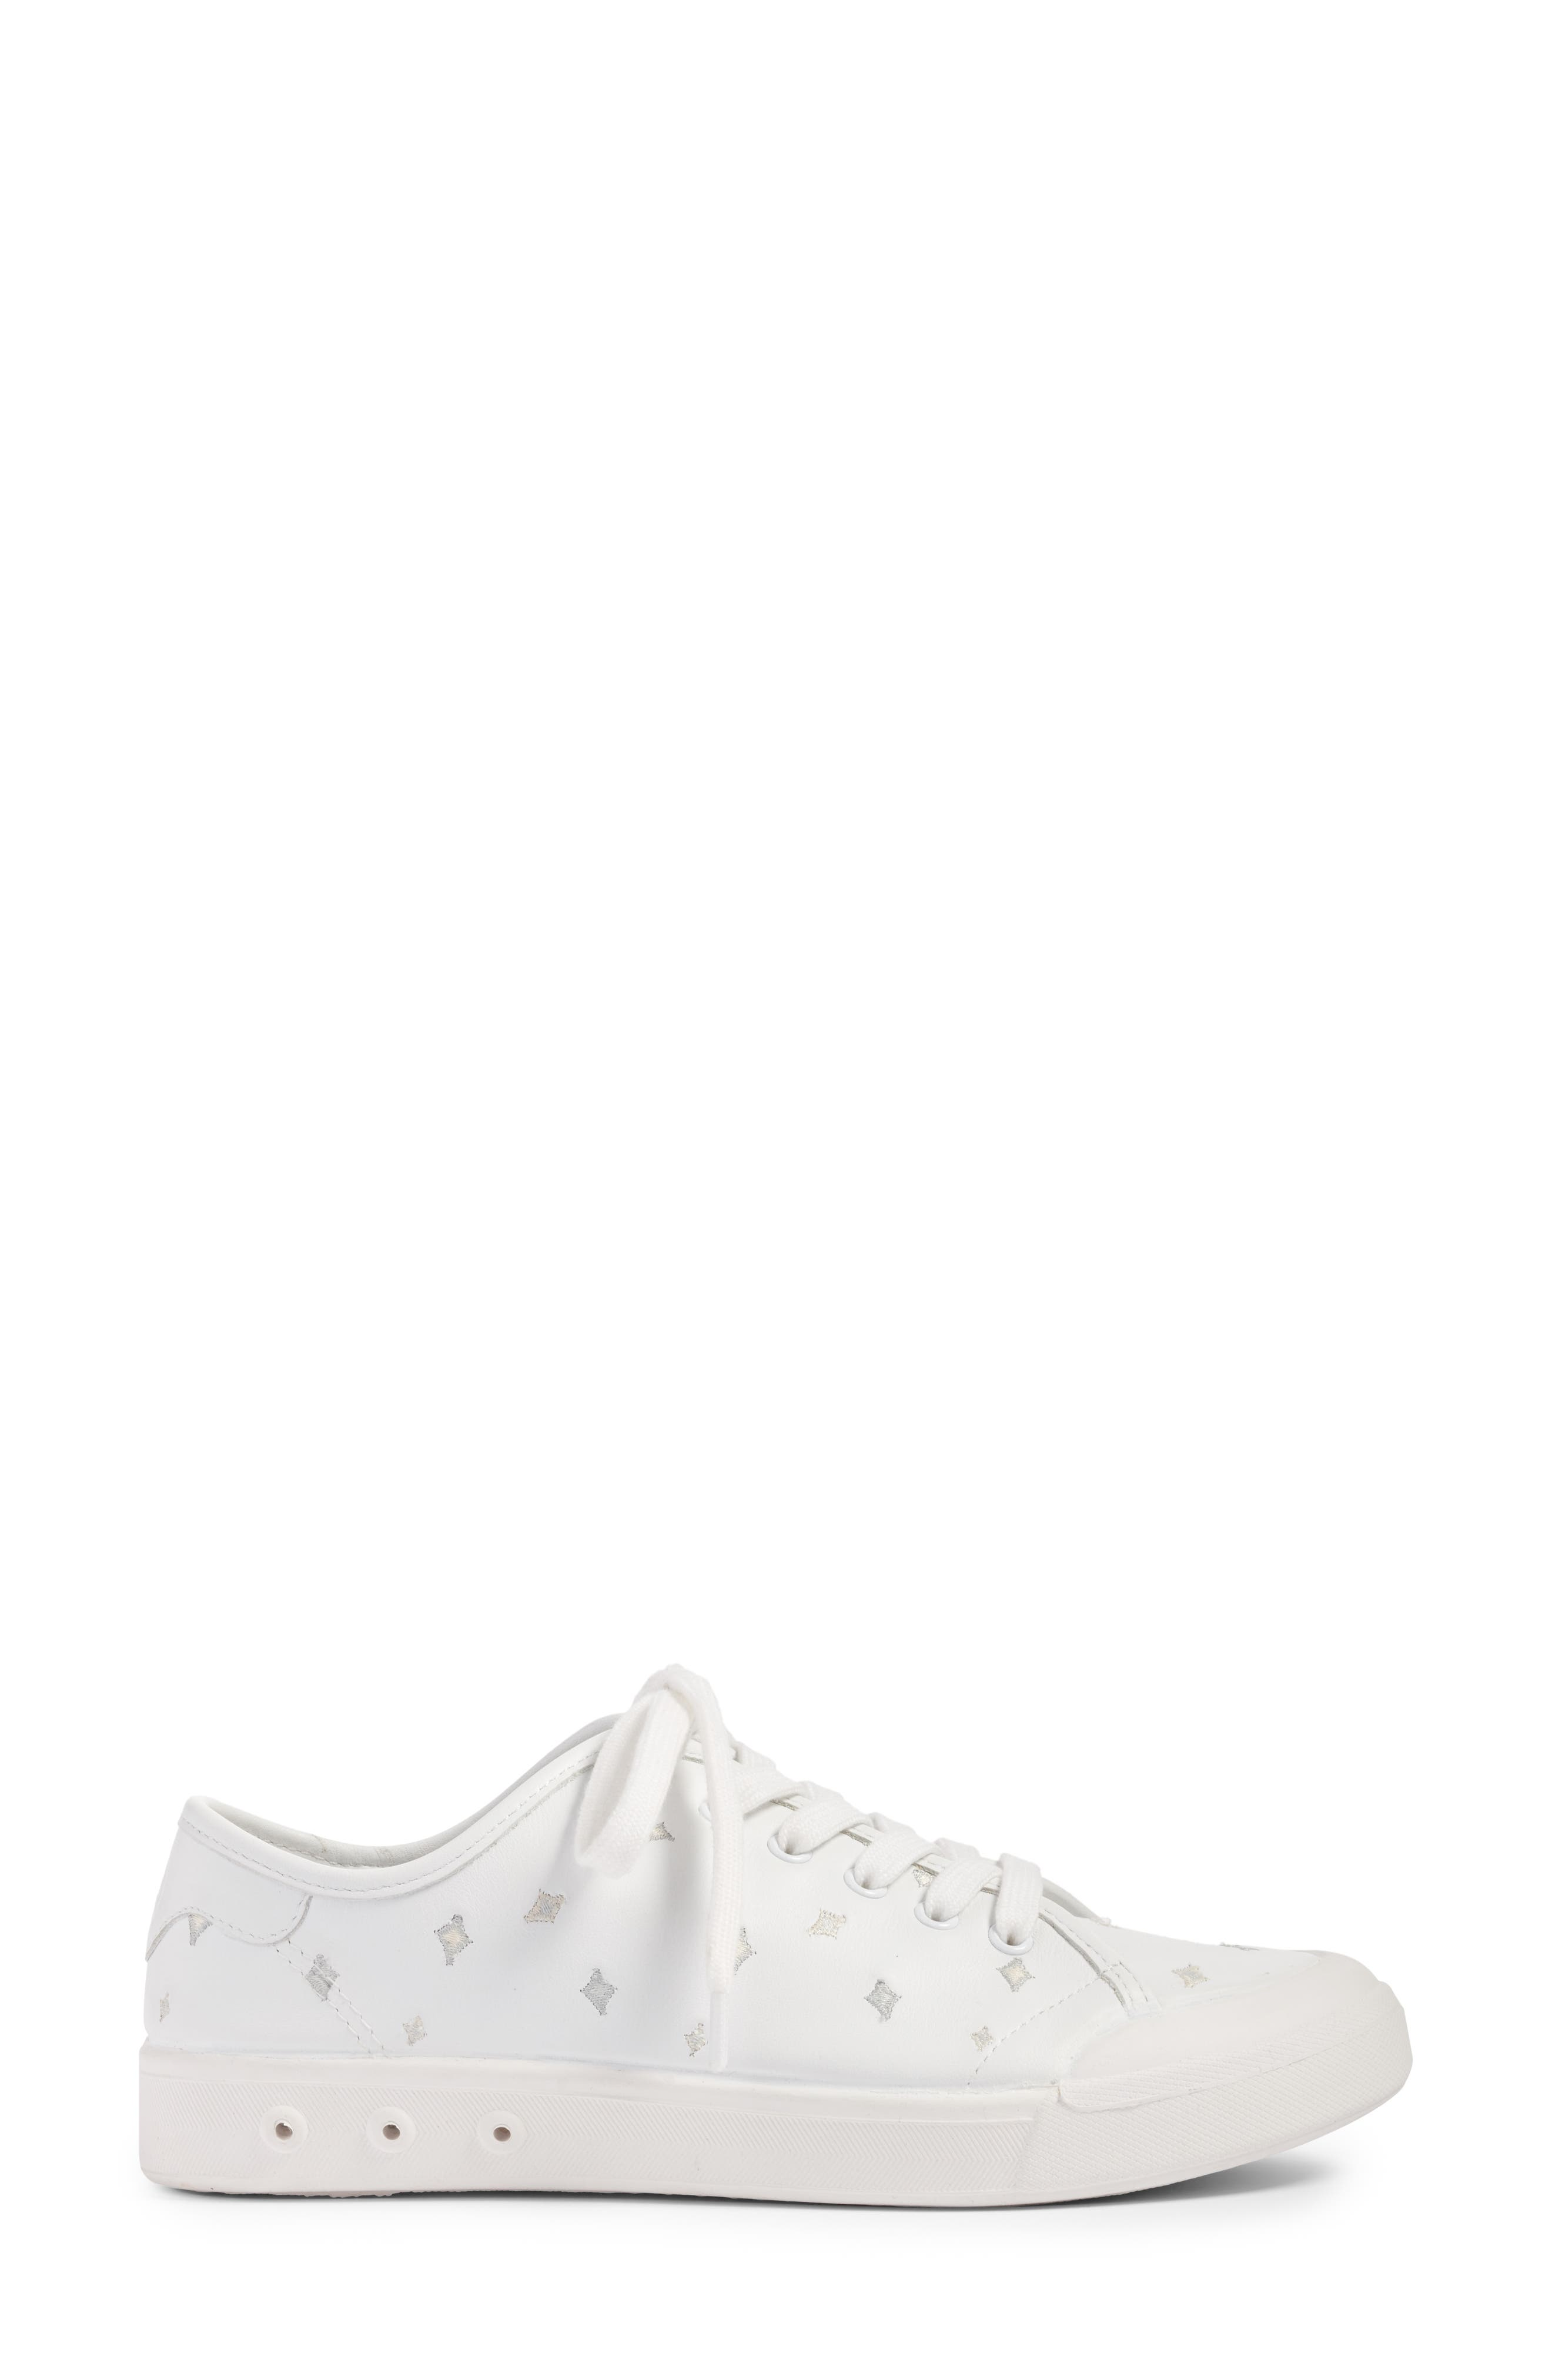 Embroidered Standard Issue Sneaker,                             Alternate thumbnail 3, color,                             White Leather Embroidery